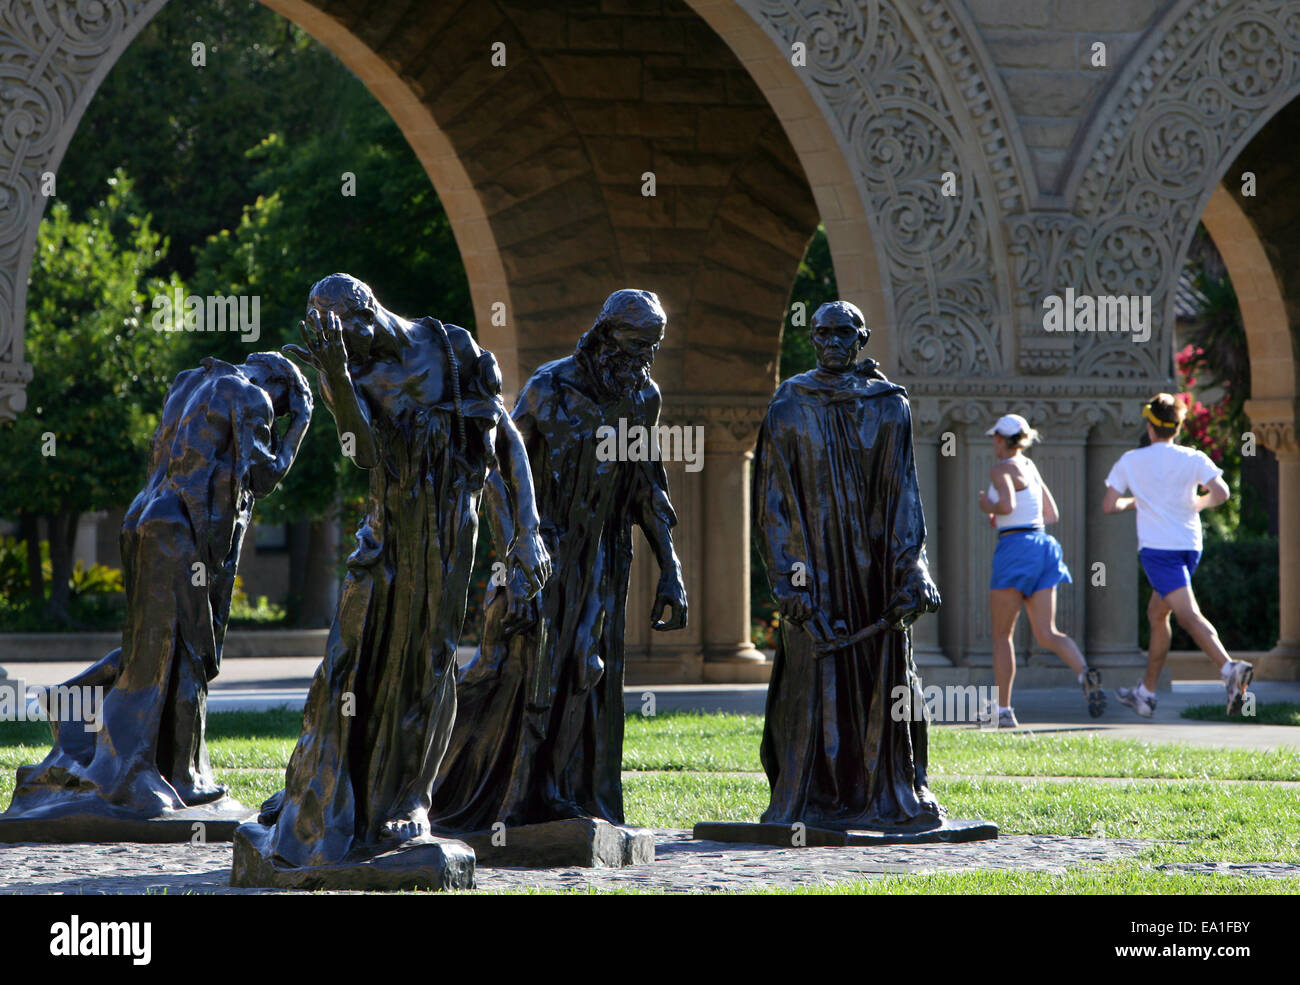 'The Burghers of Calais' bronze sculptures by Auguste Rodin at Stanford University in Palo Alto, California, - Stock Image